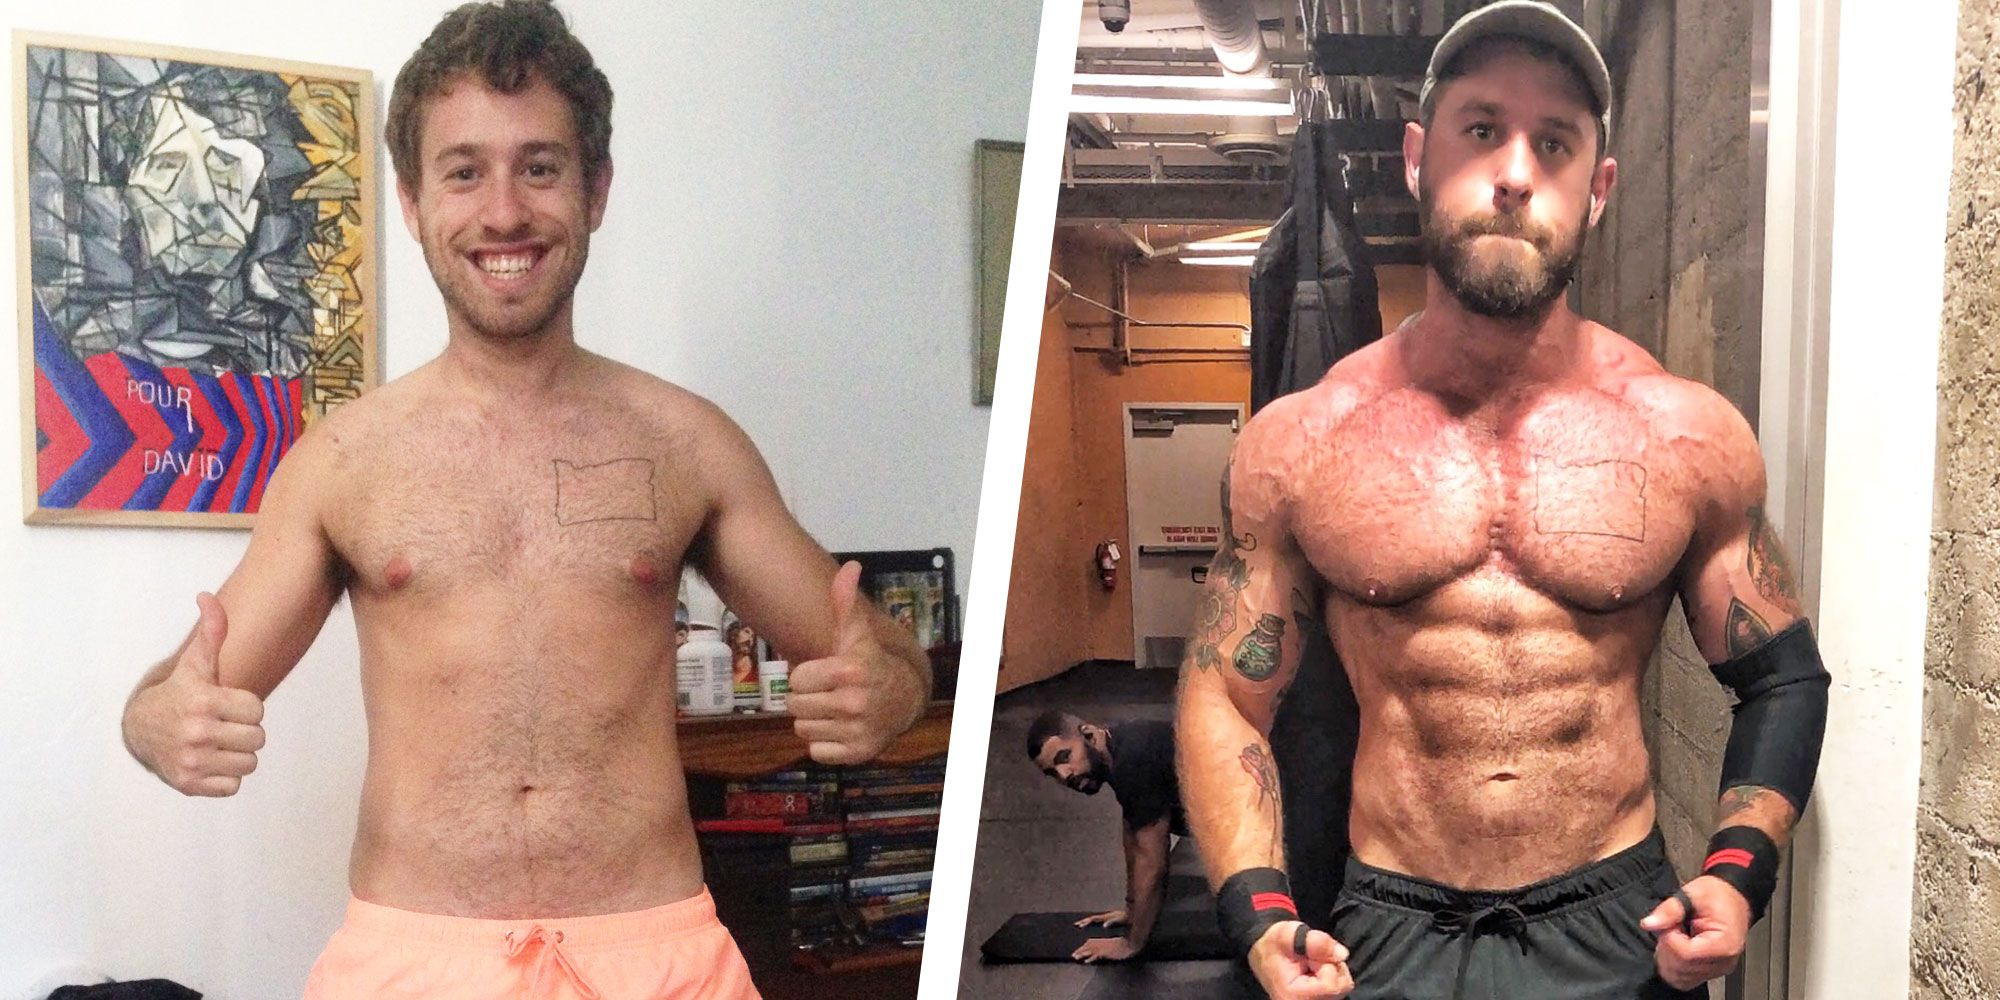 How This Guy Got Sober and Packed on Serious Muscle